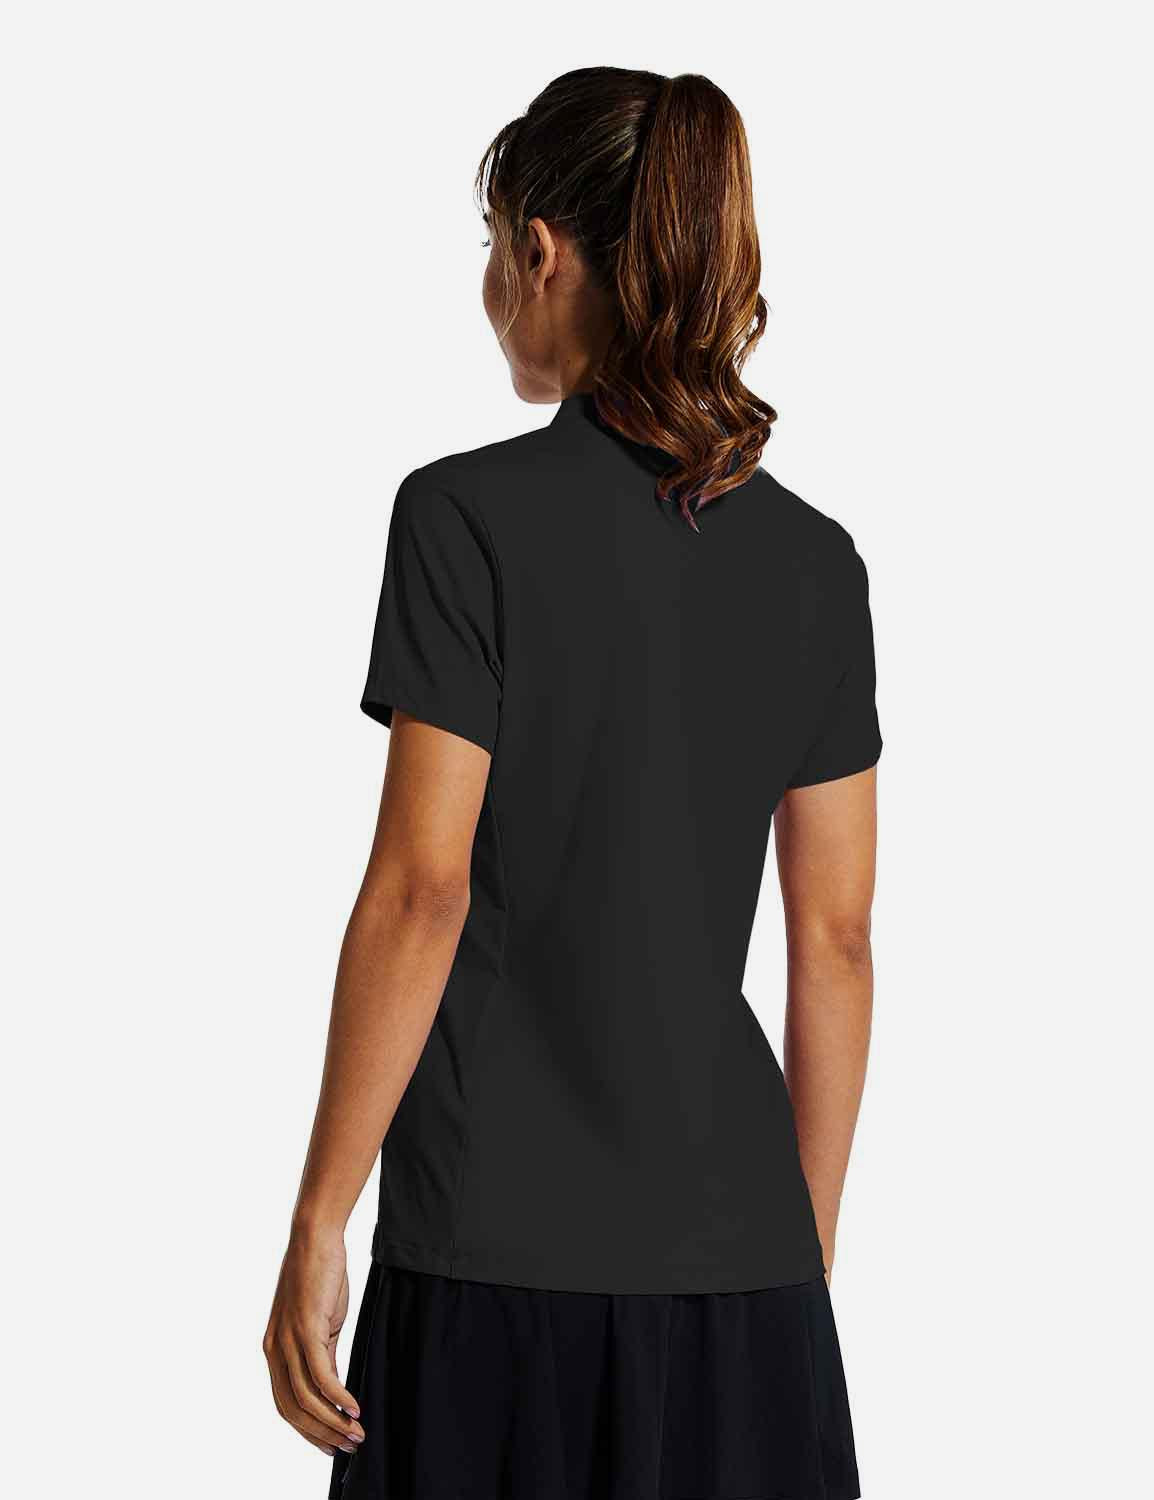 Baleaf Womens UPF50+ Short Sleeved Collarless V Neck Shirts Black back